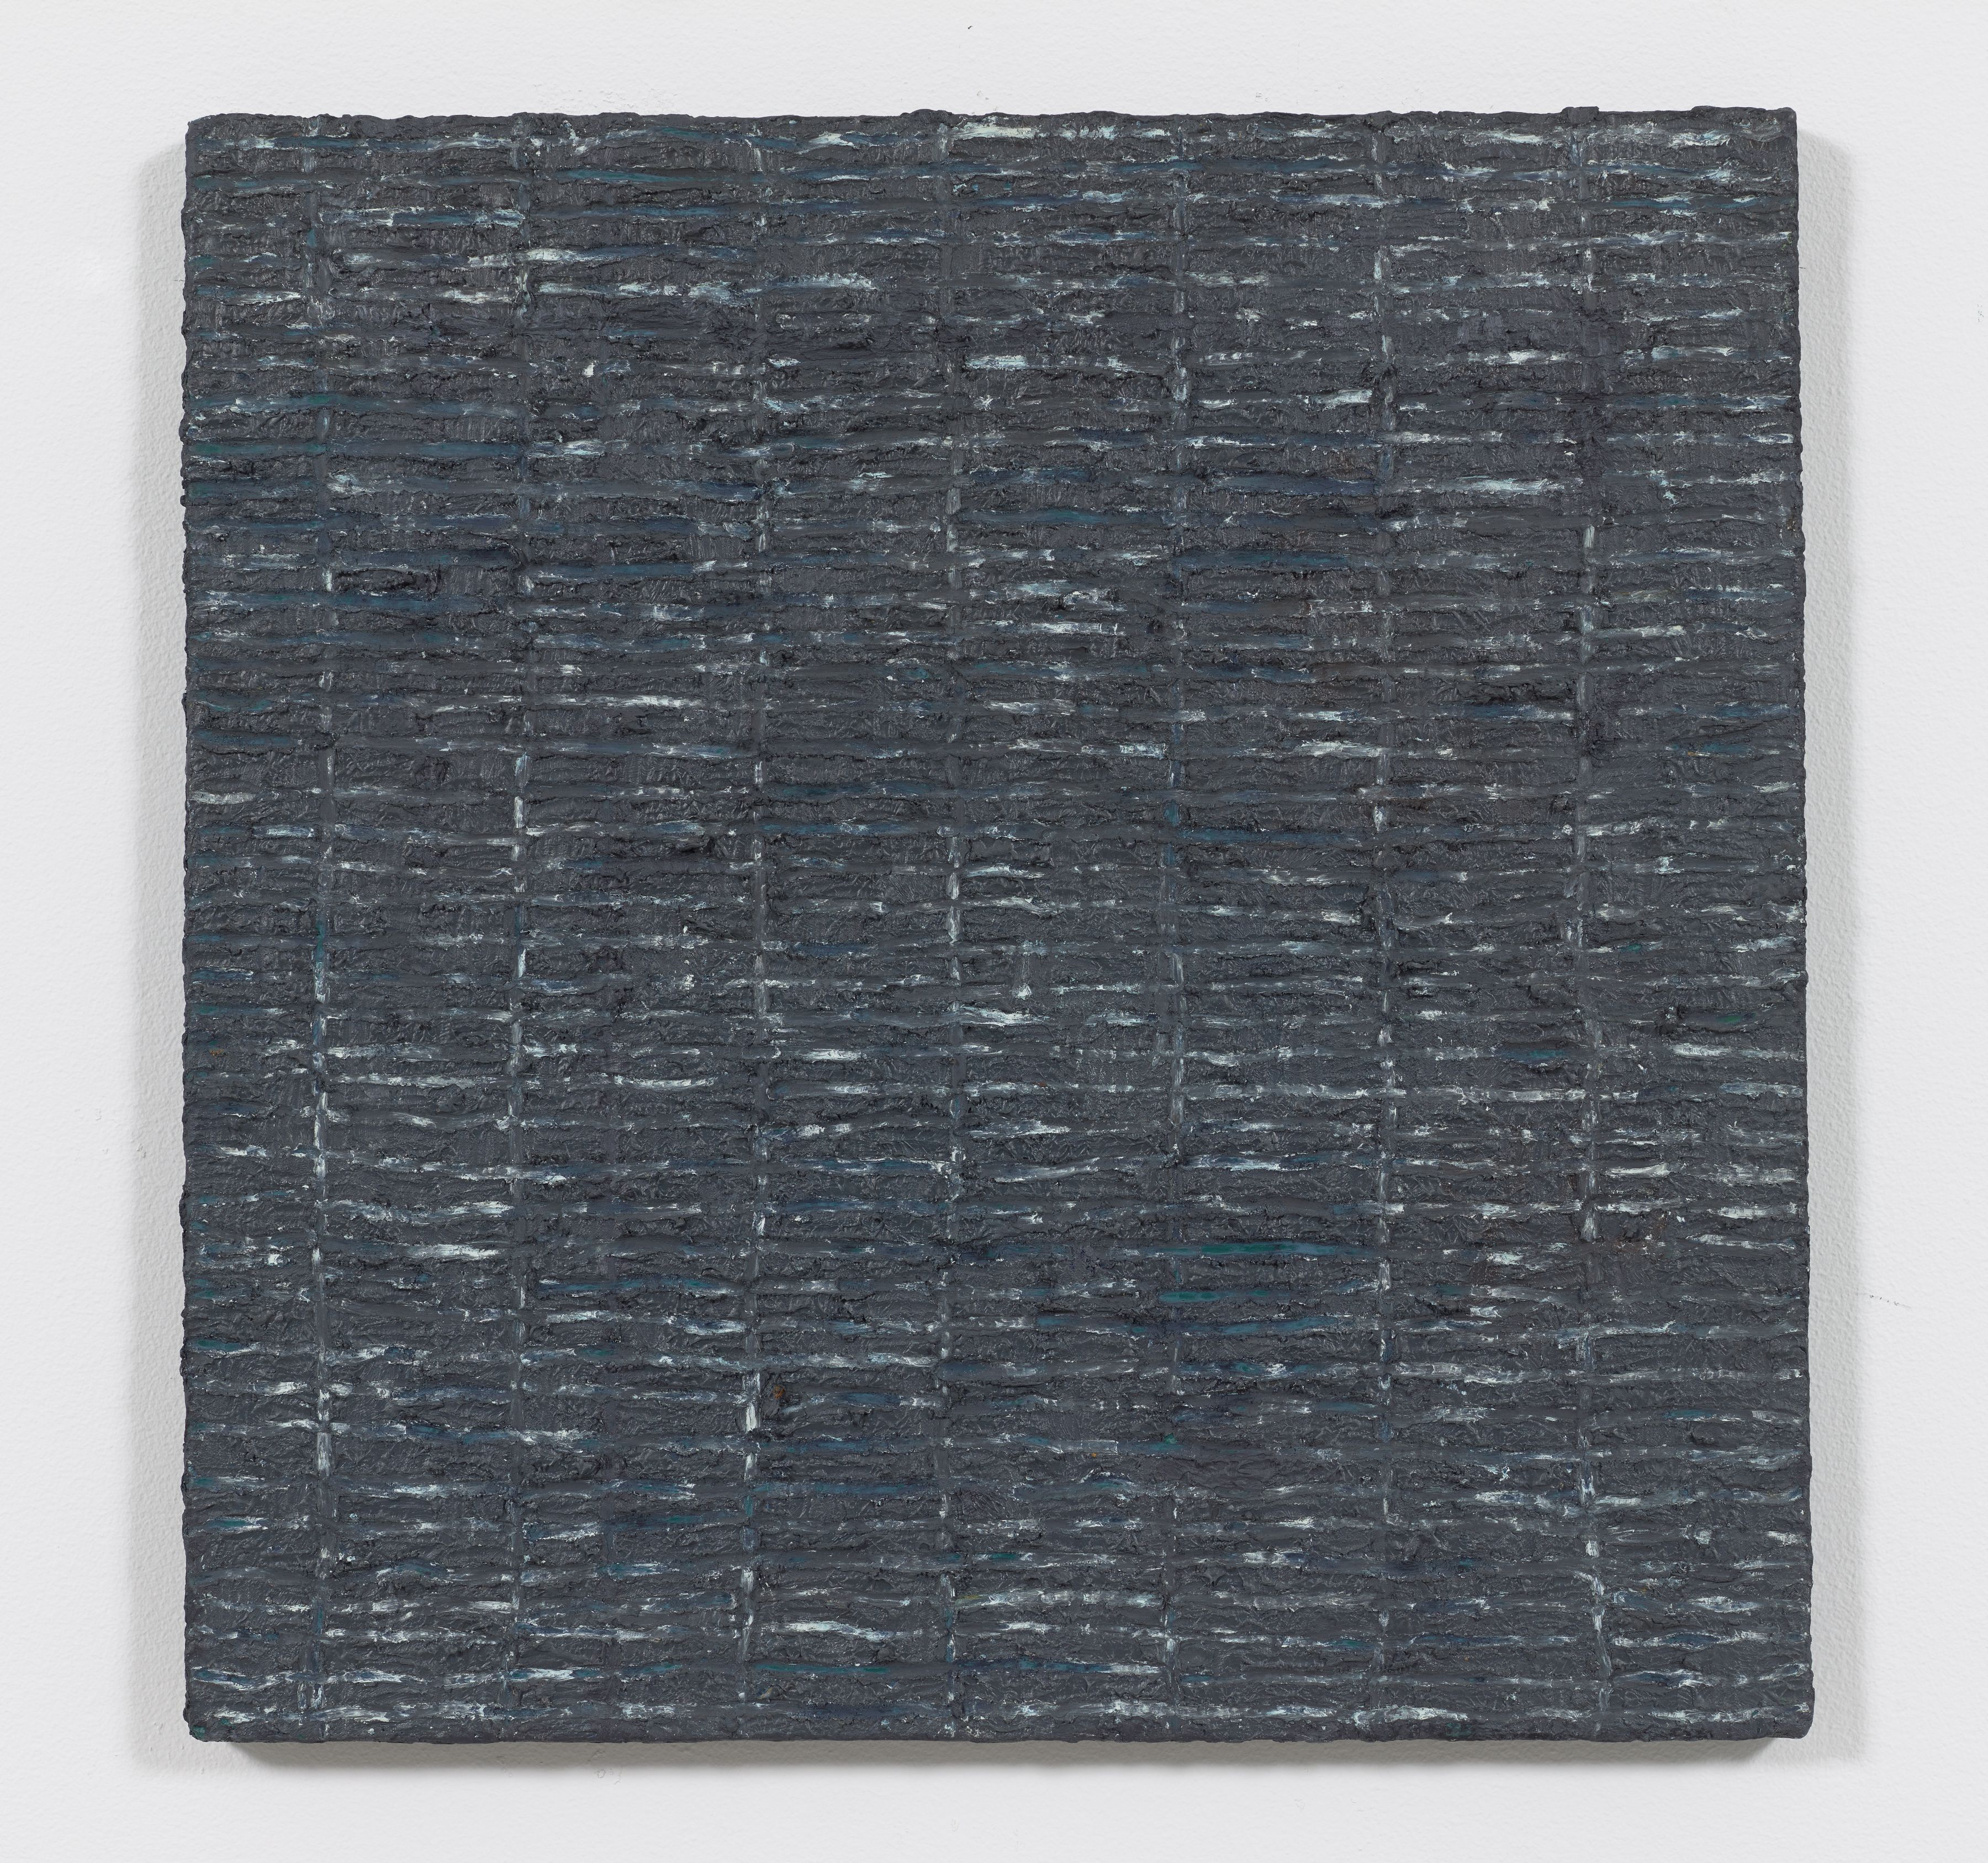 Grey Grid, 1974, Oil and Dorland's wax on canvas